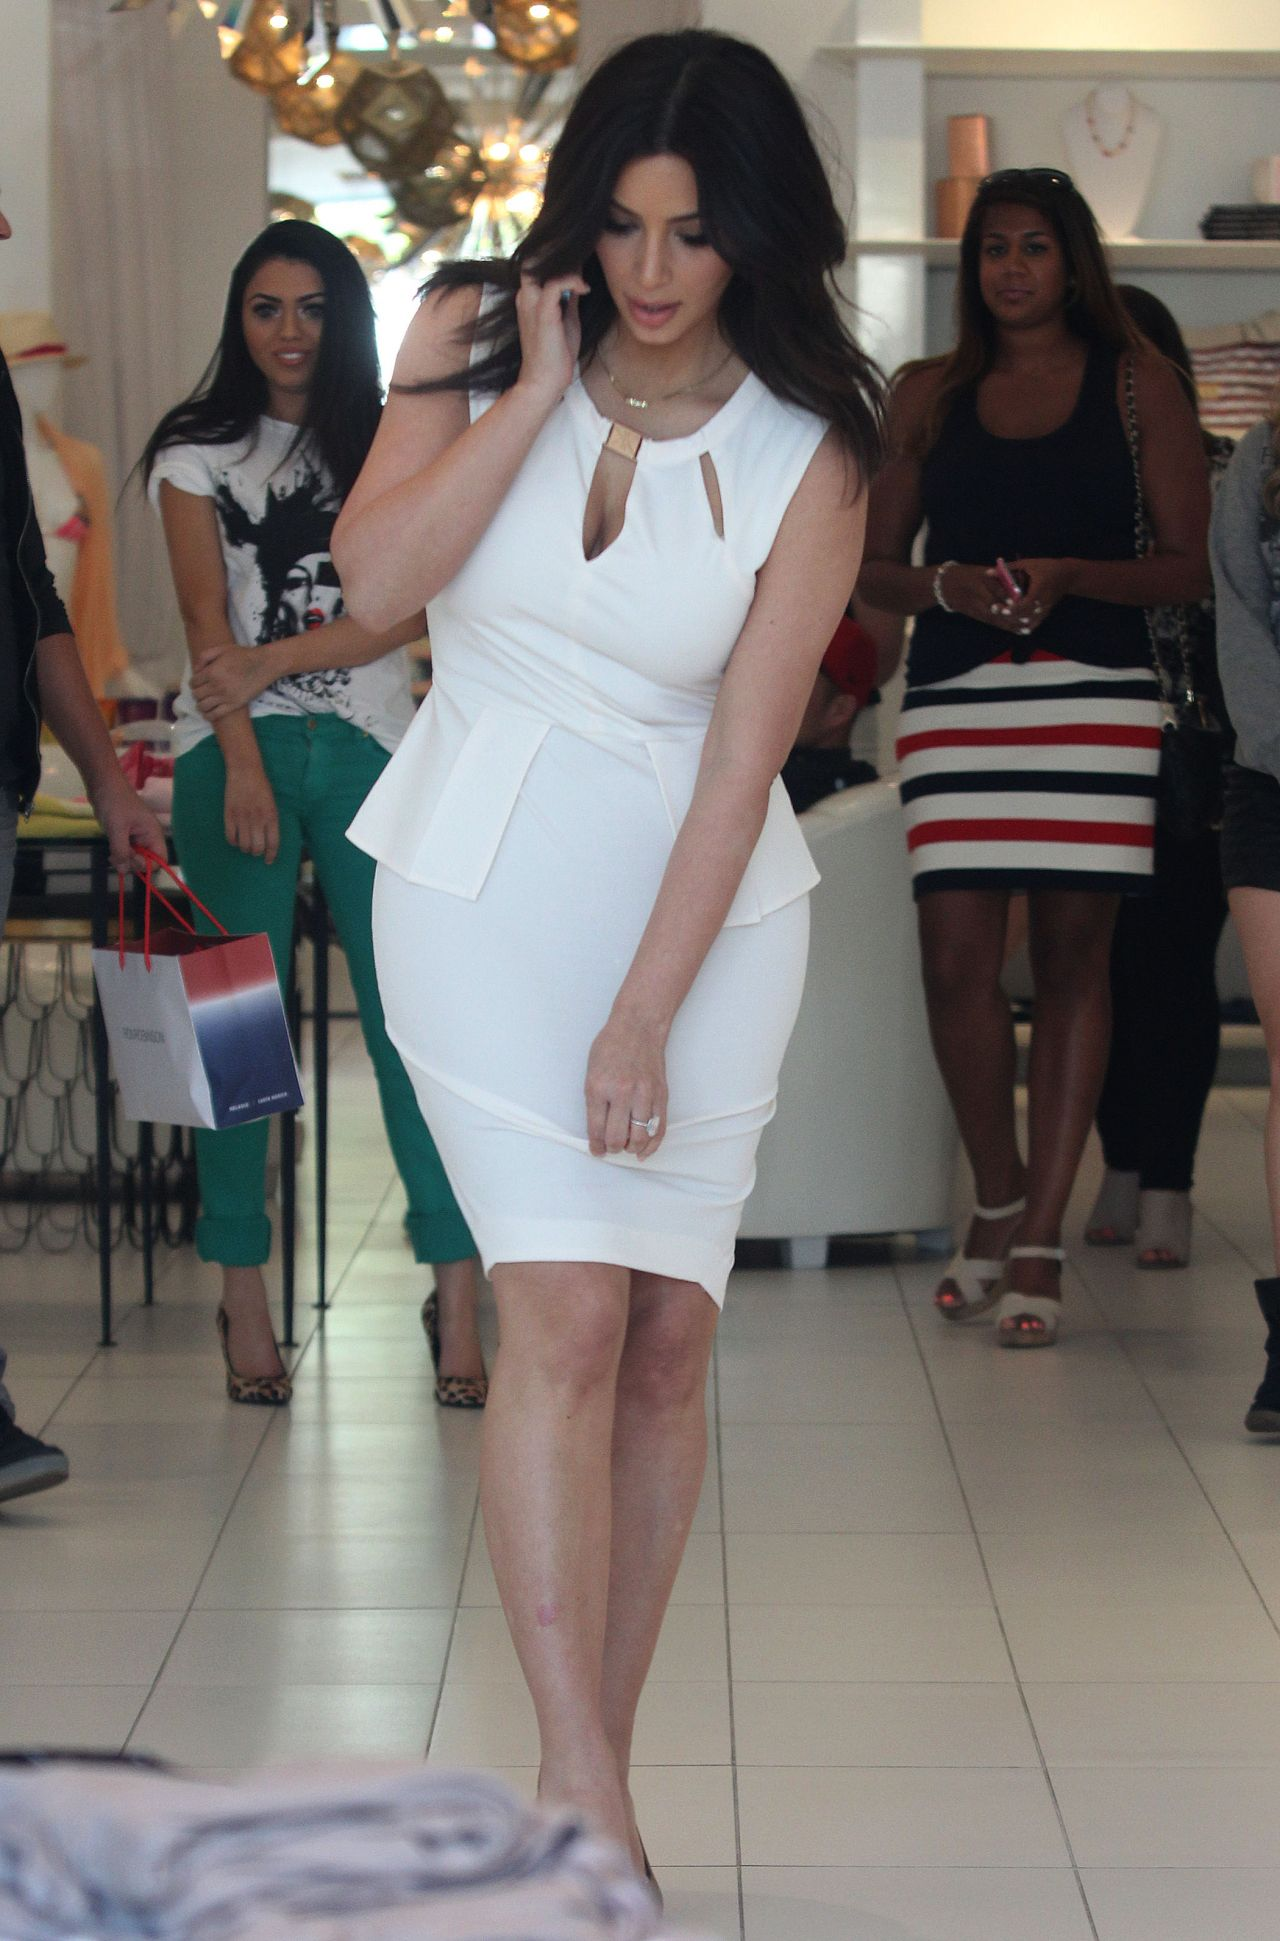 fc1608c3ec Kim Kardashian - Out For Some Shopping in Los Angeles - March 2014